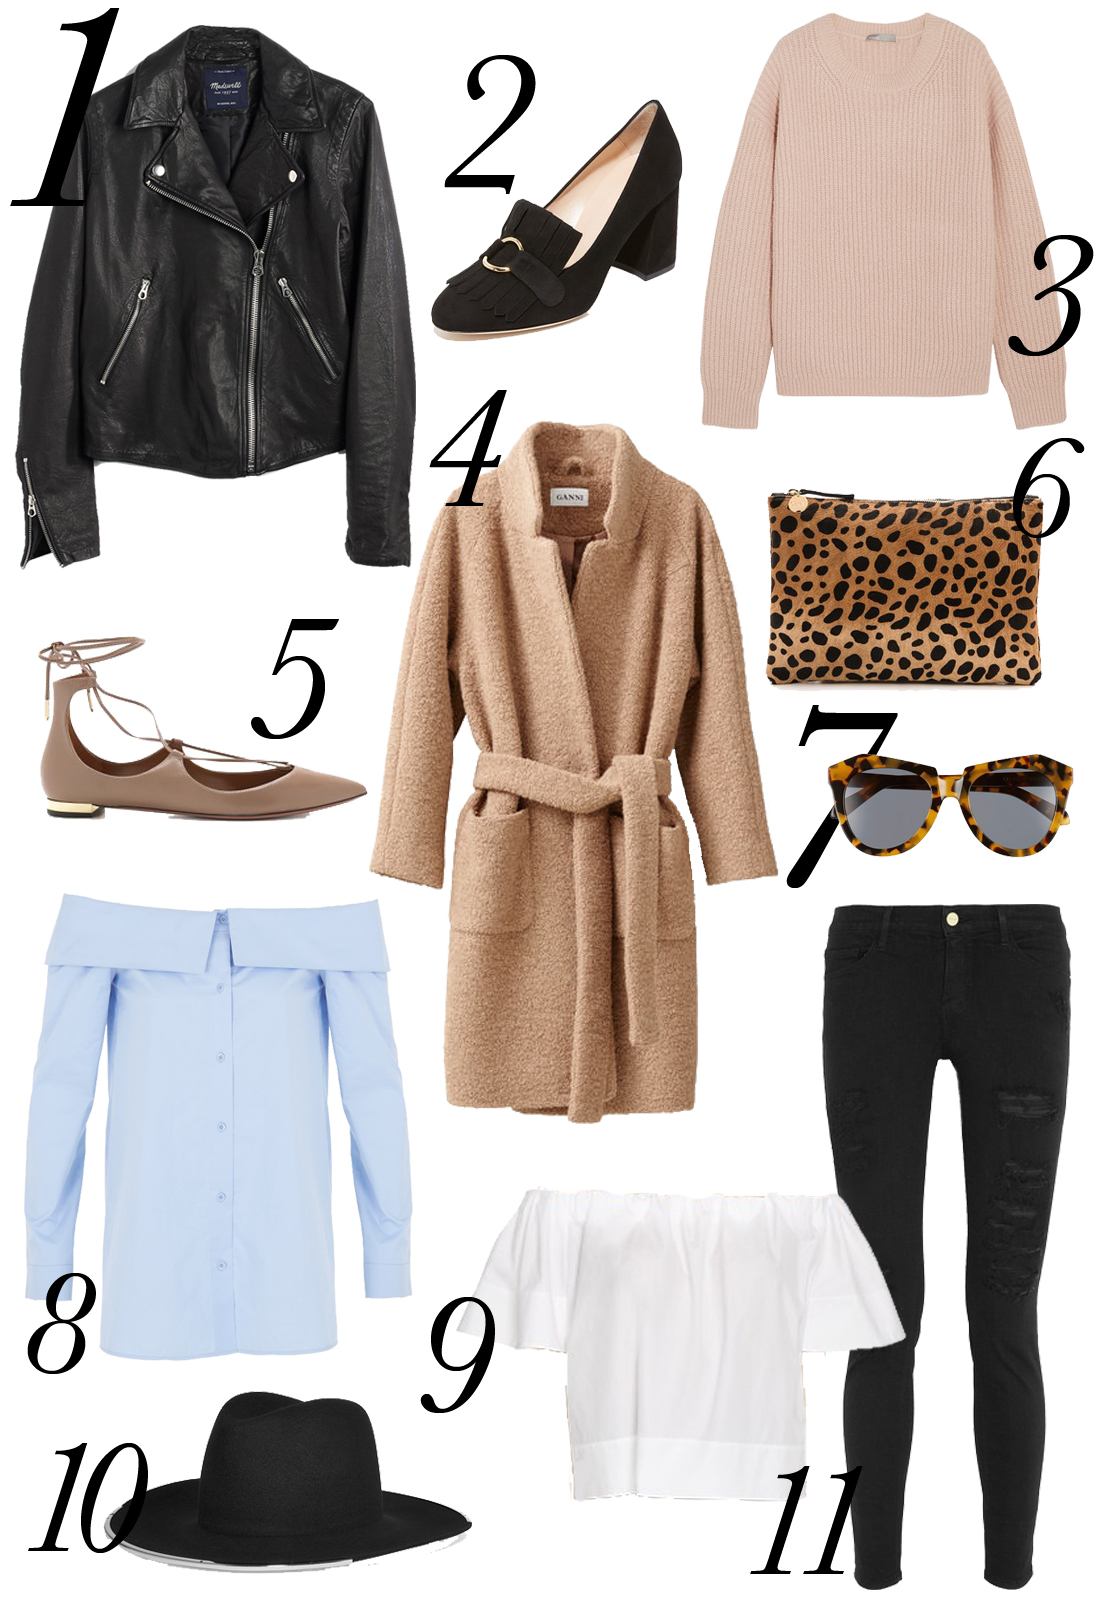 shopbop sale, madewell black leather jacket, clare v leopard clutch, vince pink sweater, ganni camel coat, aquazzura christy lace up flats, janessa leone anita hat, frame ripped denim, vince white off the shoulder top, karen walker number one sunglasses, tibi off the shoulder shirt blue